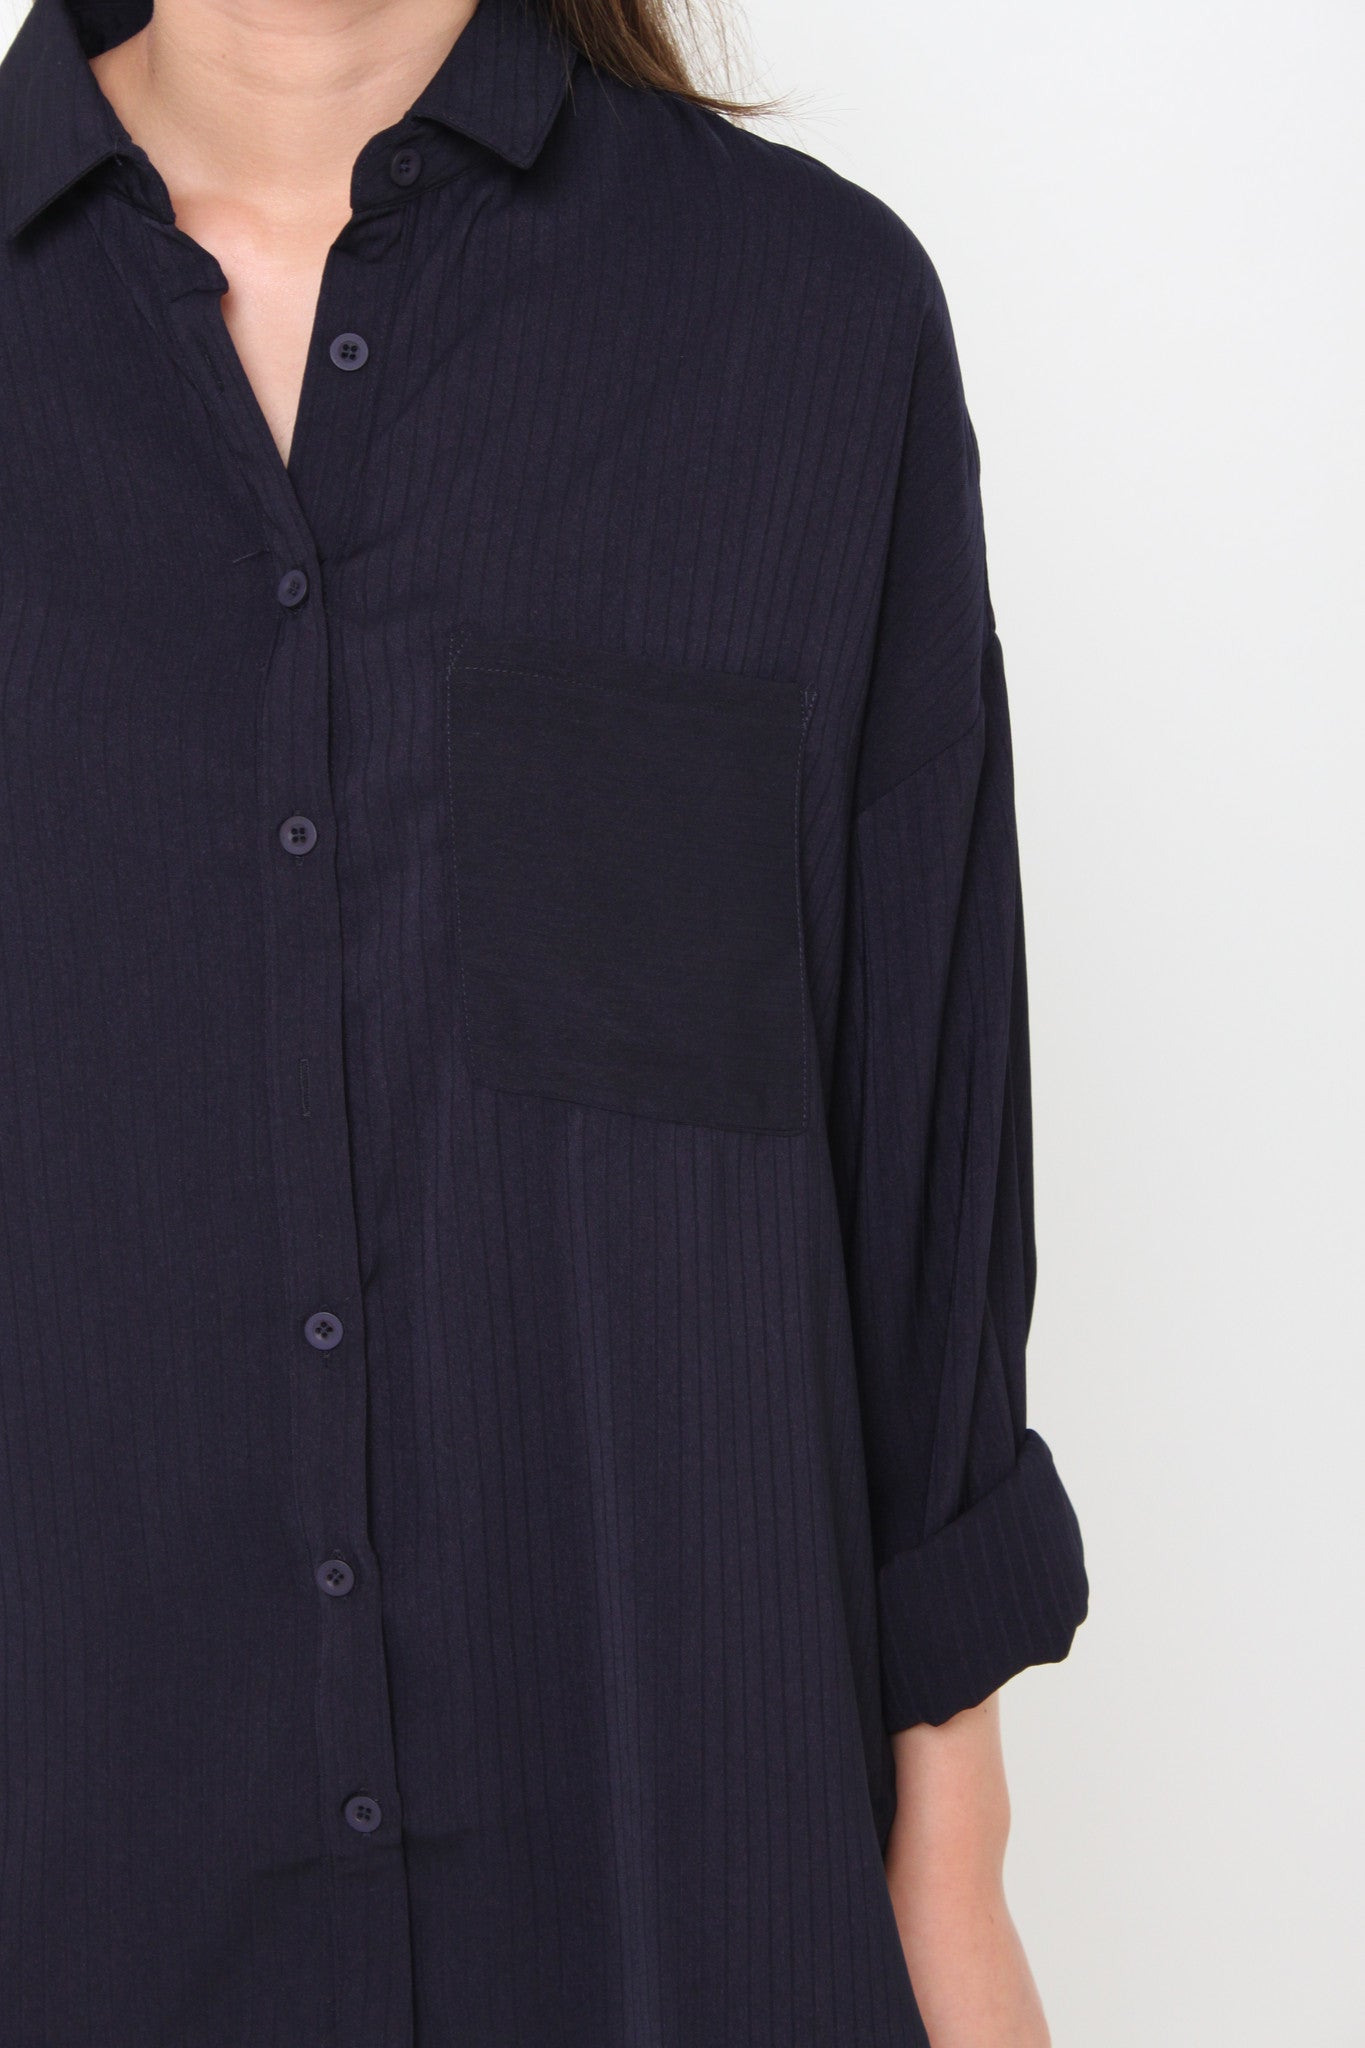 Venus Texture Line Pocket Shirt in Blue